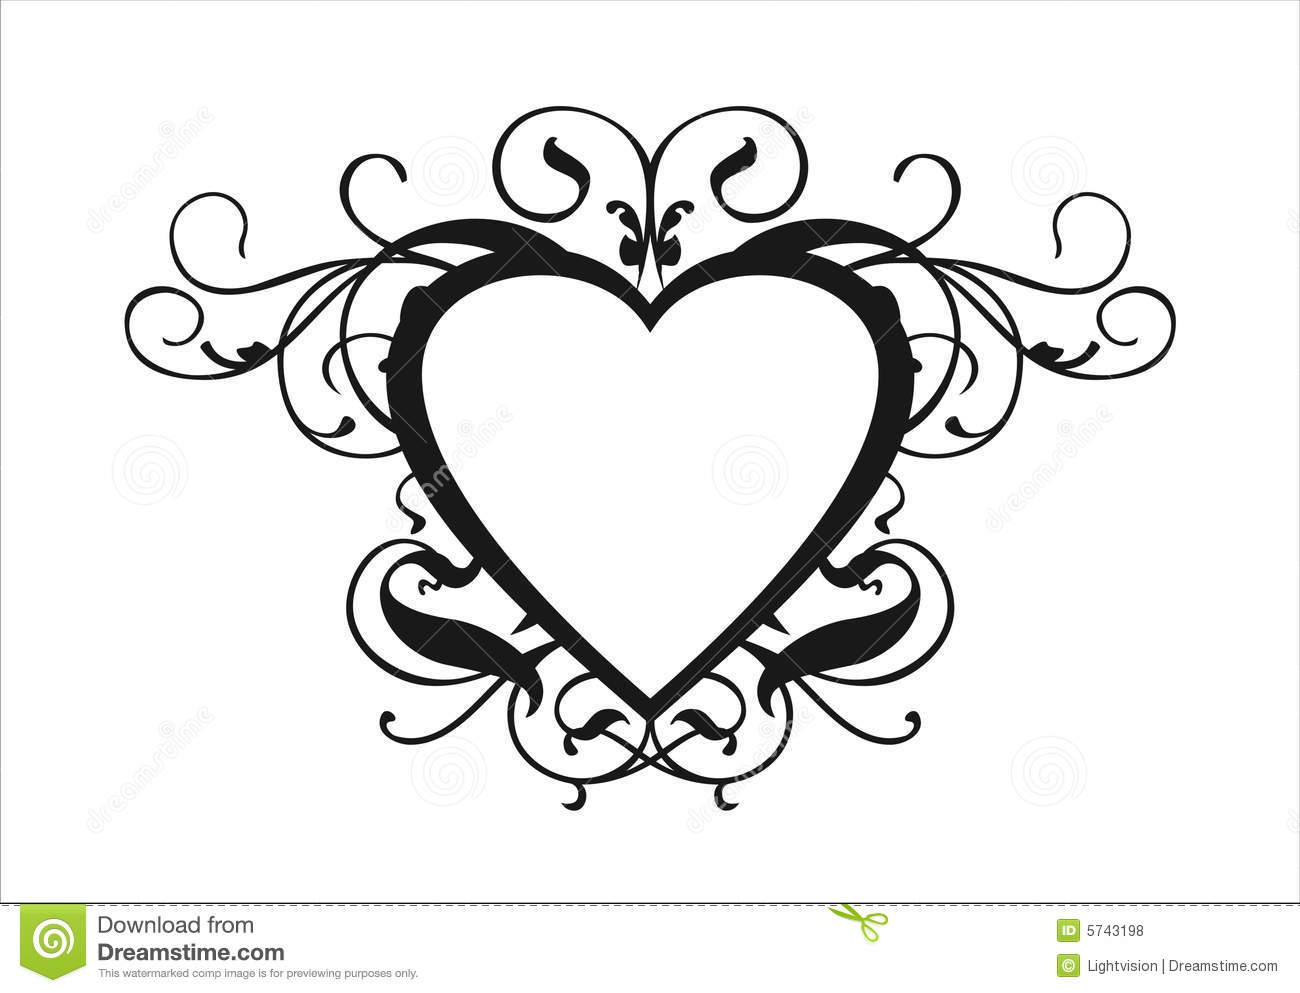 Heart Scroll Royalty Free Stock Photos - Image: 5743198